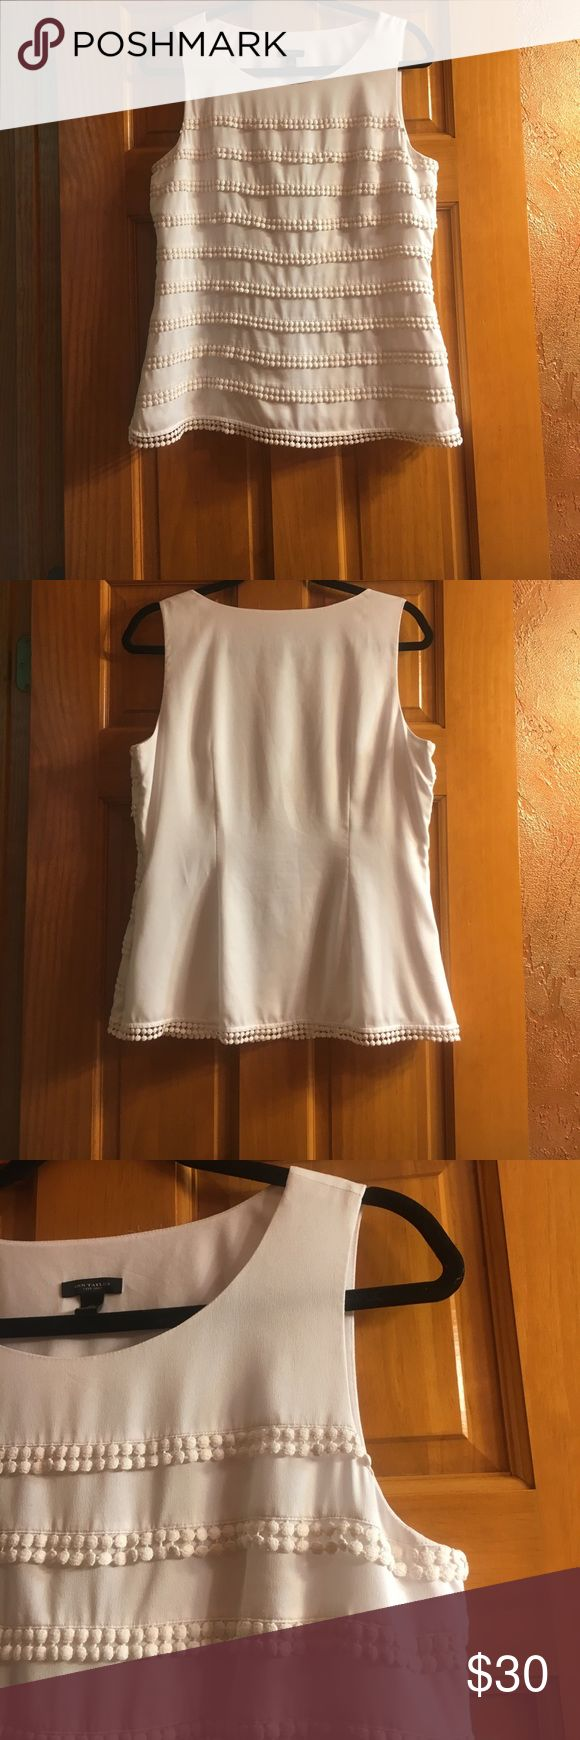 Ann Taylor White Sleeveless Blouse 🕊 Ann Taylor White Sleeveless lined Blouse 🕊 Size: 10 Perfect condition, only flaw are a few loose threads that are very unnoticeable. {See photo} Features include: Small functional hidden zipper on side, circle fringe detailing (off white, light cream), no fading(bright white), lined & 100% Polyester! Perfect for the office, dress it up or down!! {Measurements upon request} Ann Taylor Tops Blouses